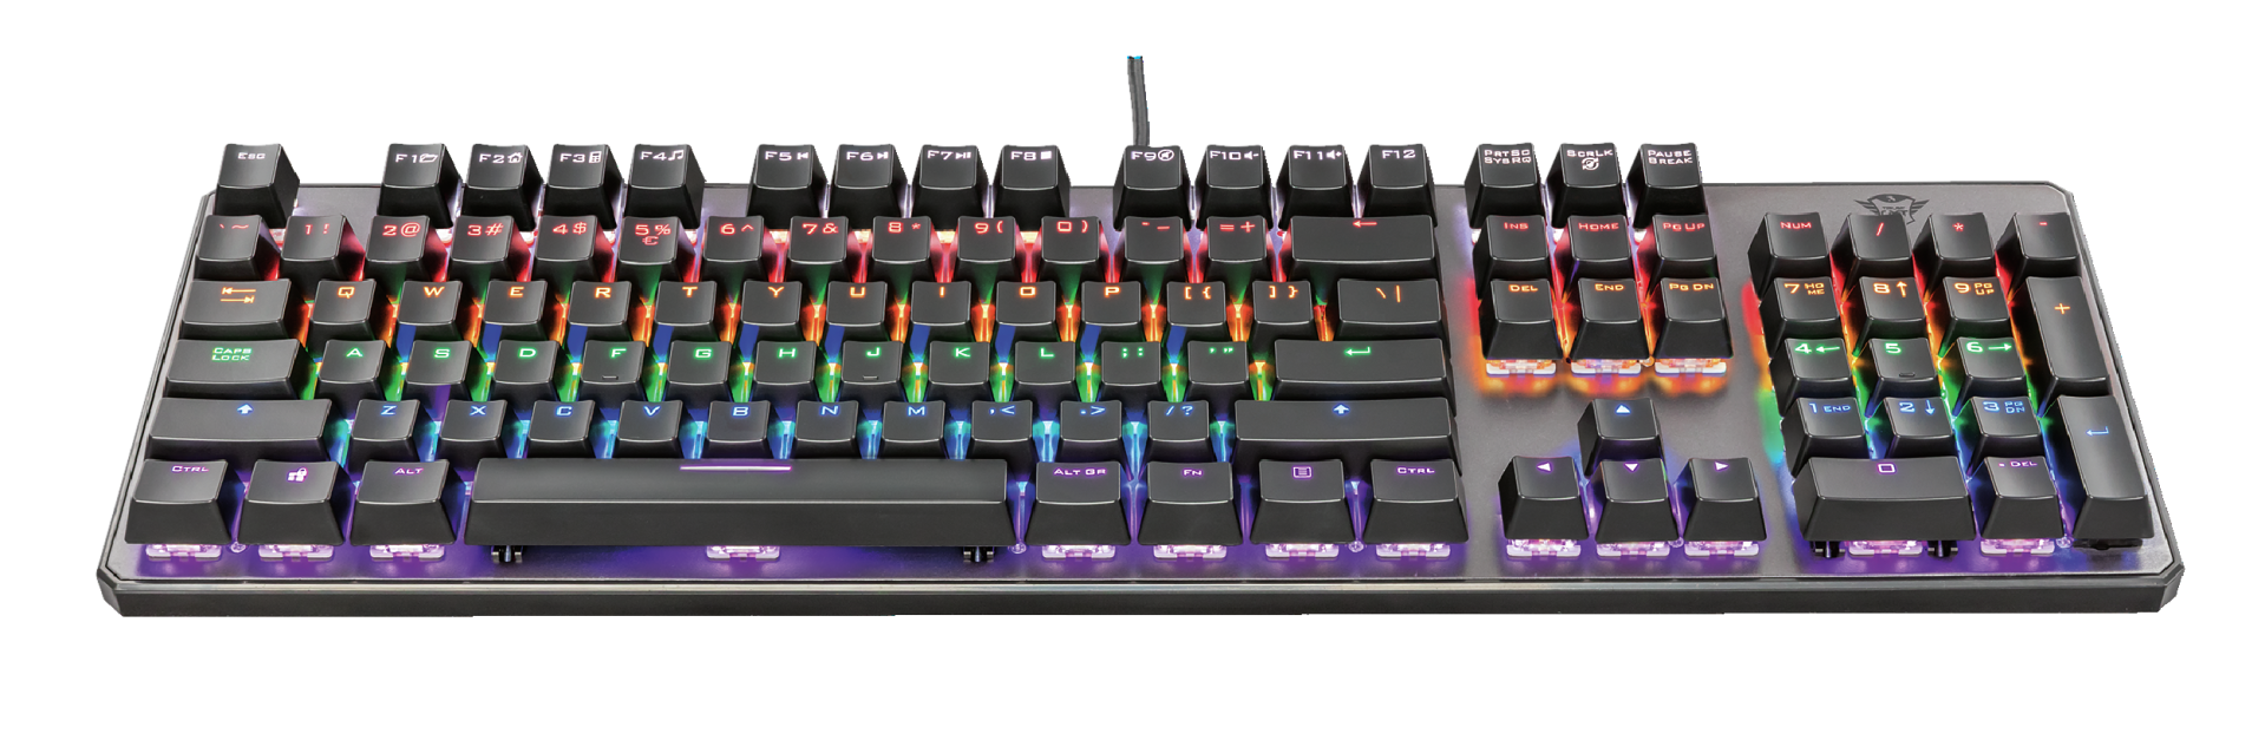 CLAVIER GAMING GXT-865 ASTA RGB MECANIQUE LED NOIR PC tr232013